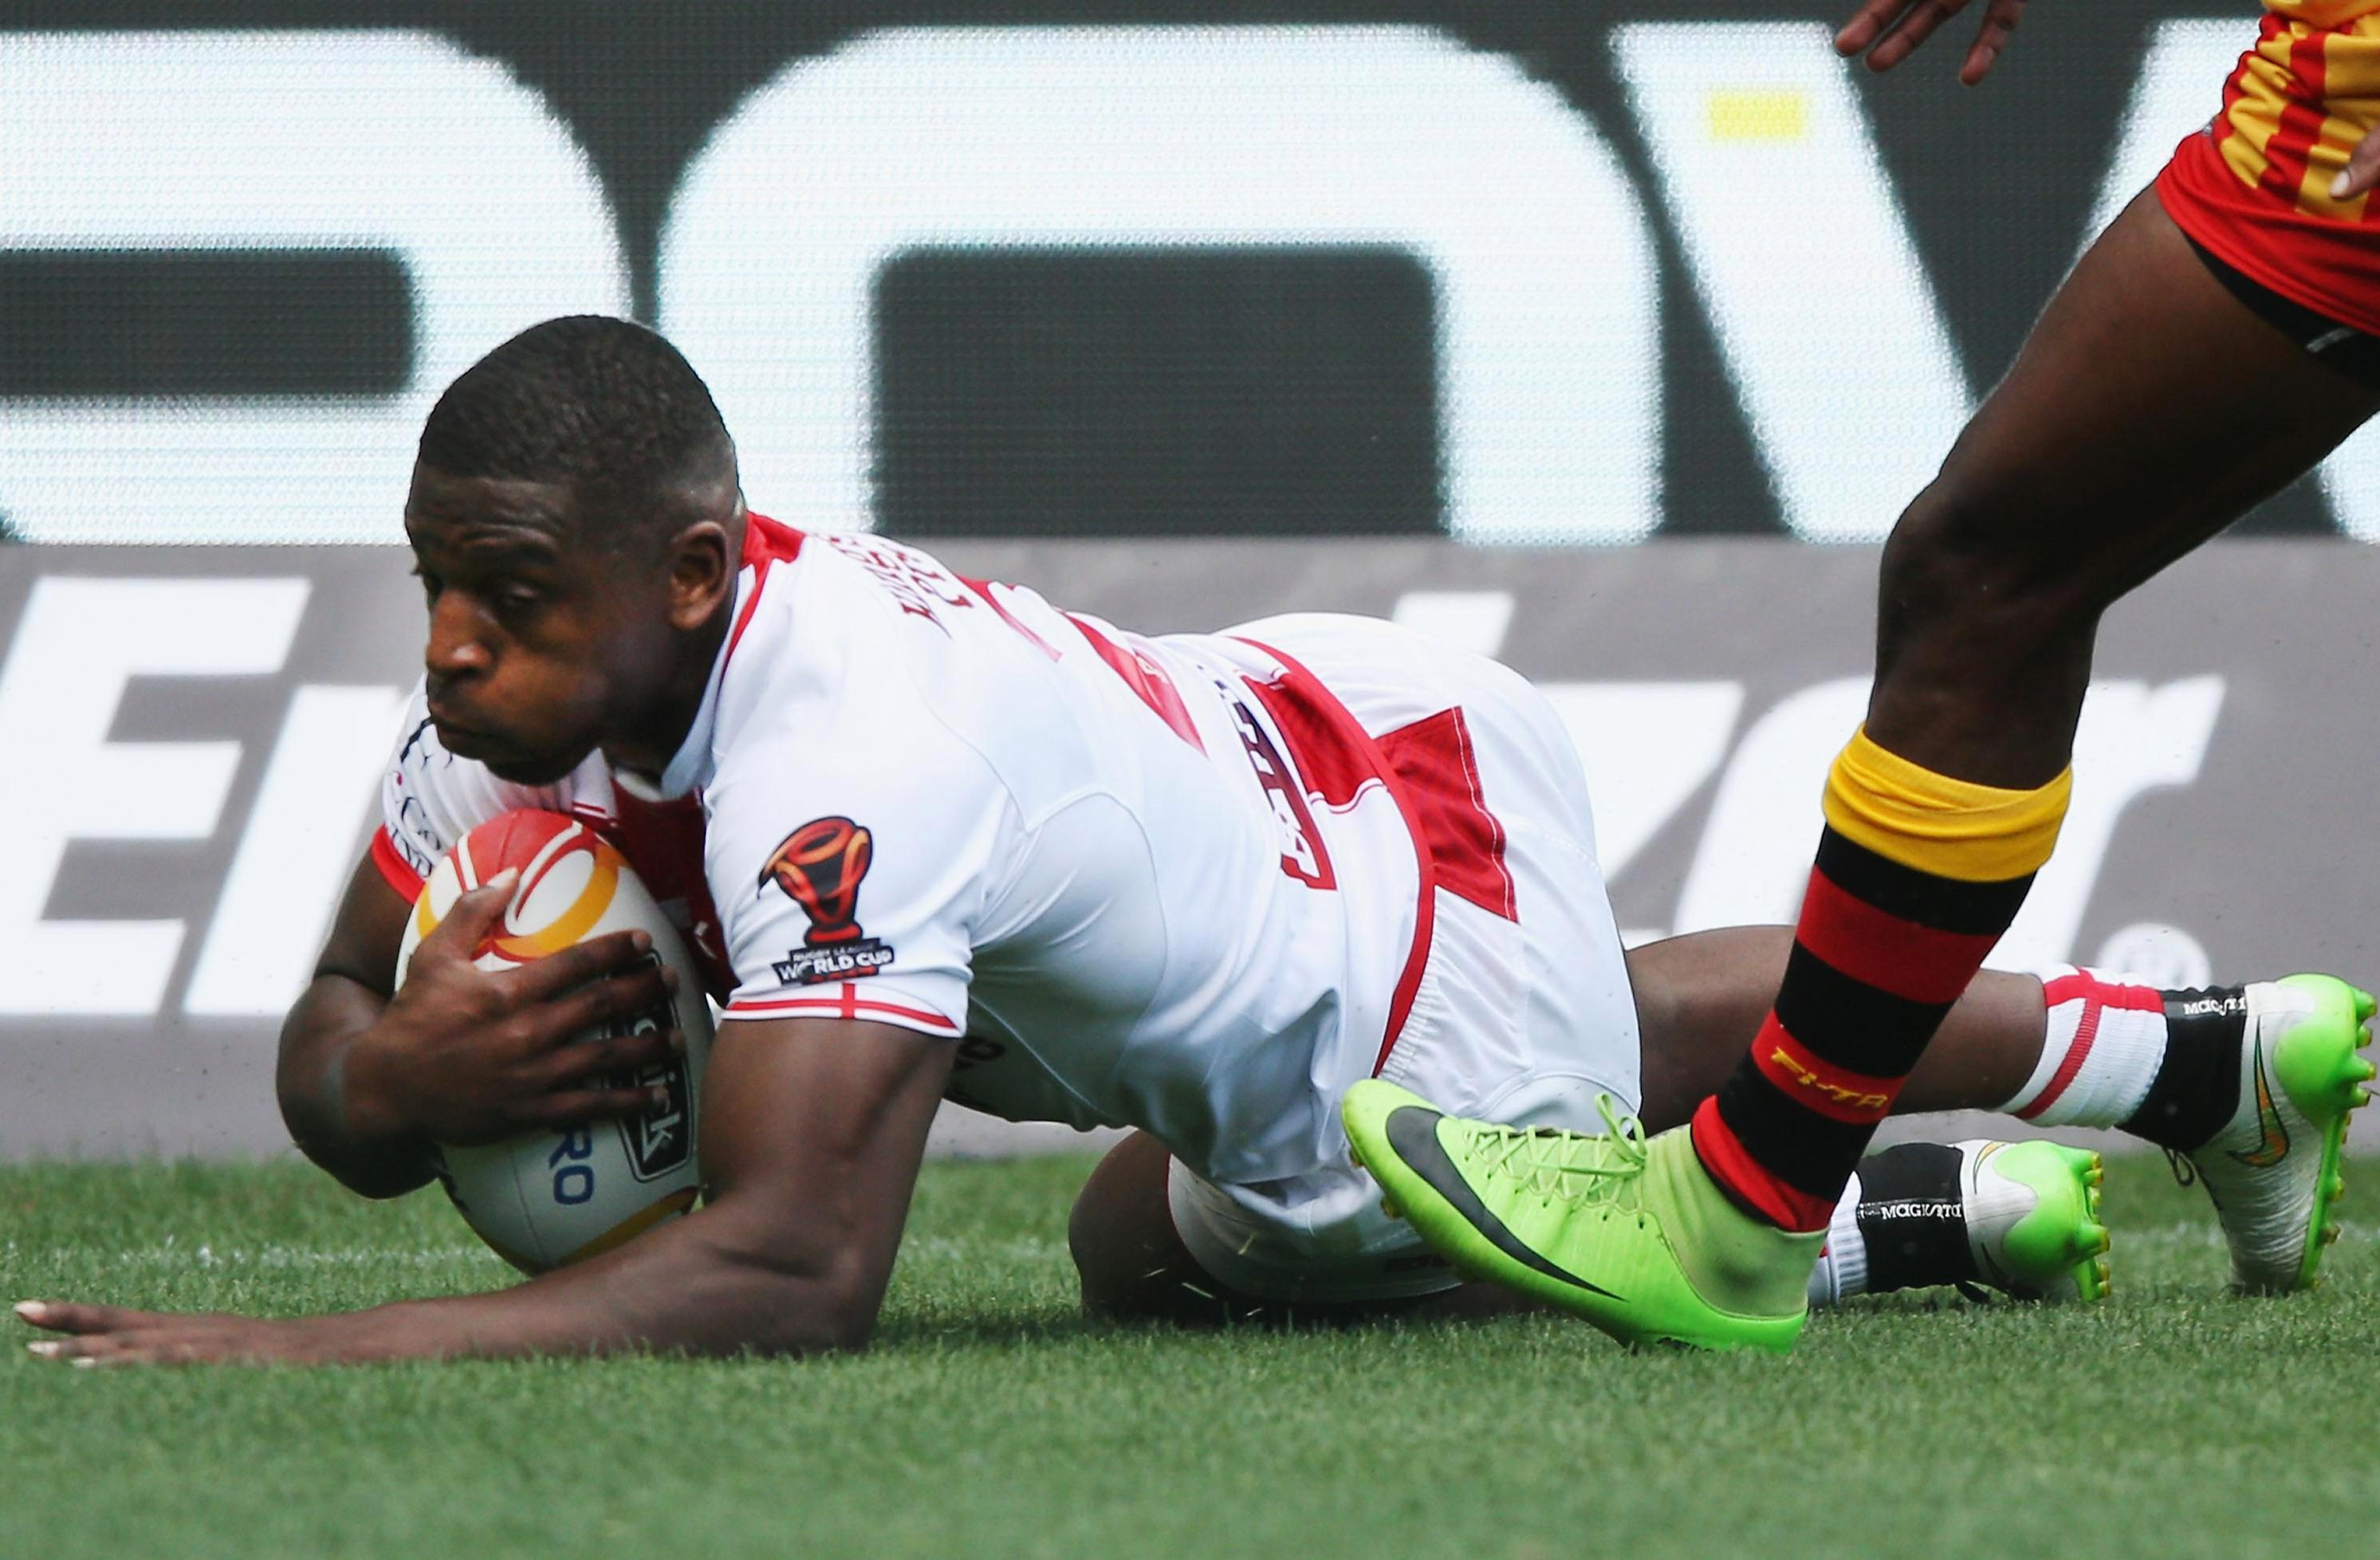 McGillvary will face New Zealand in Denver today